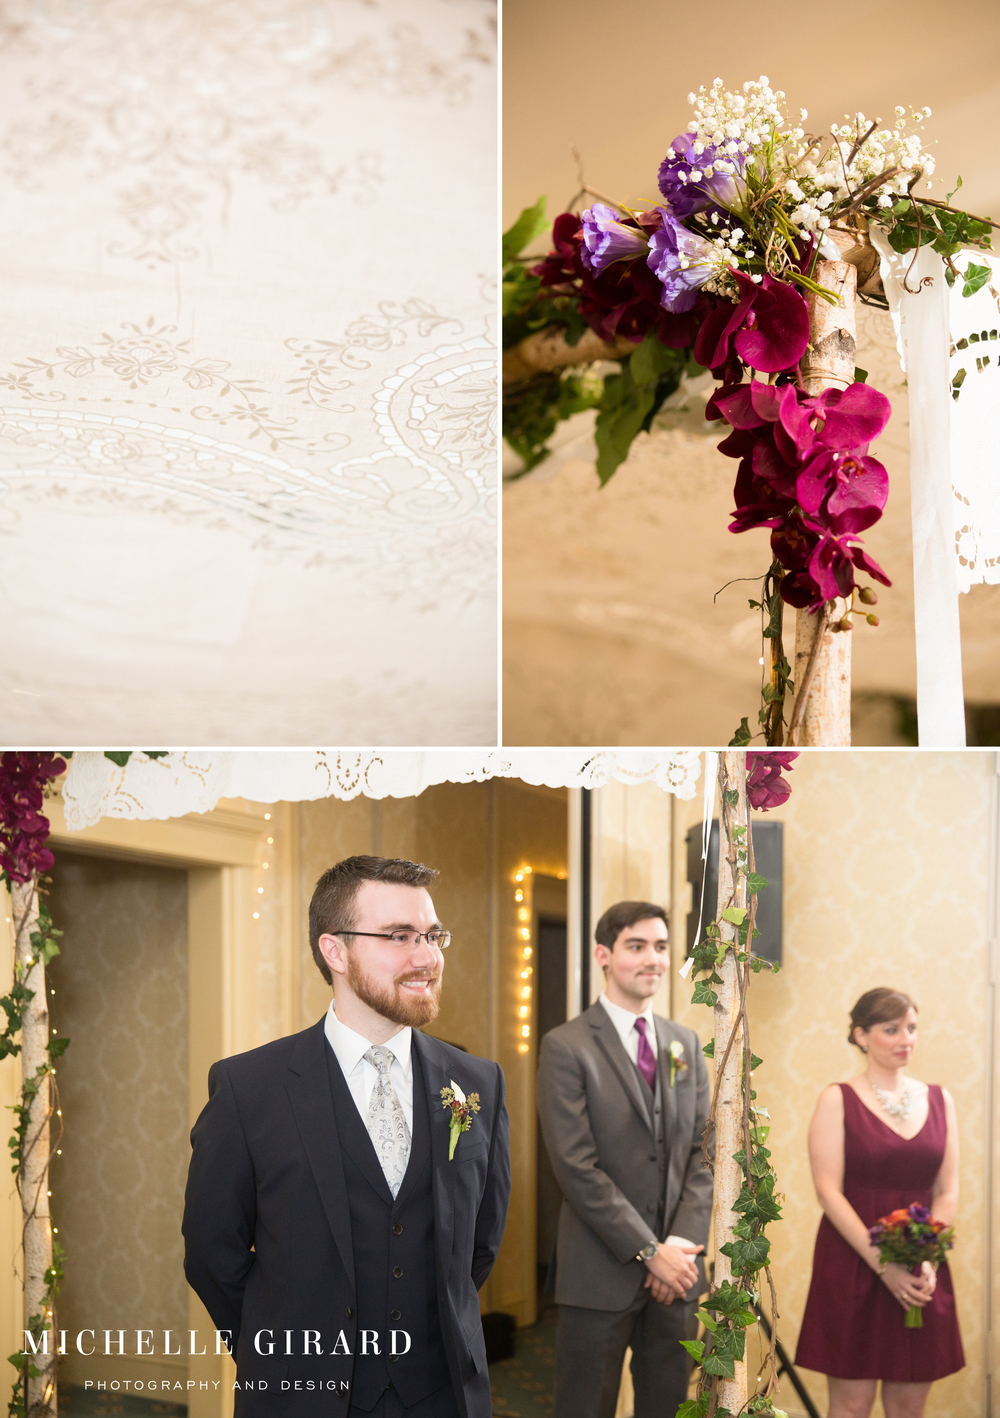 LordJefferyInnWedding_AmherstMa_MichelleGirardPhotography30.jpg